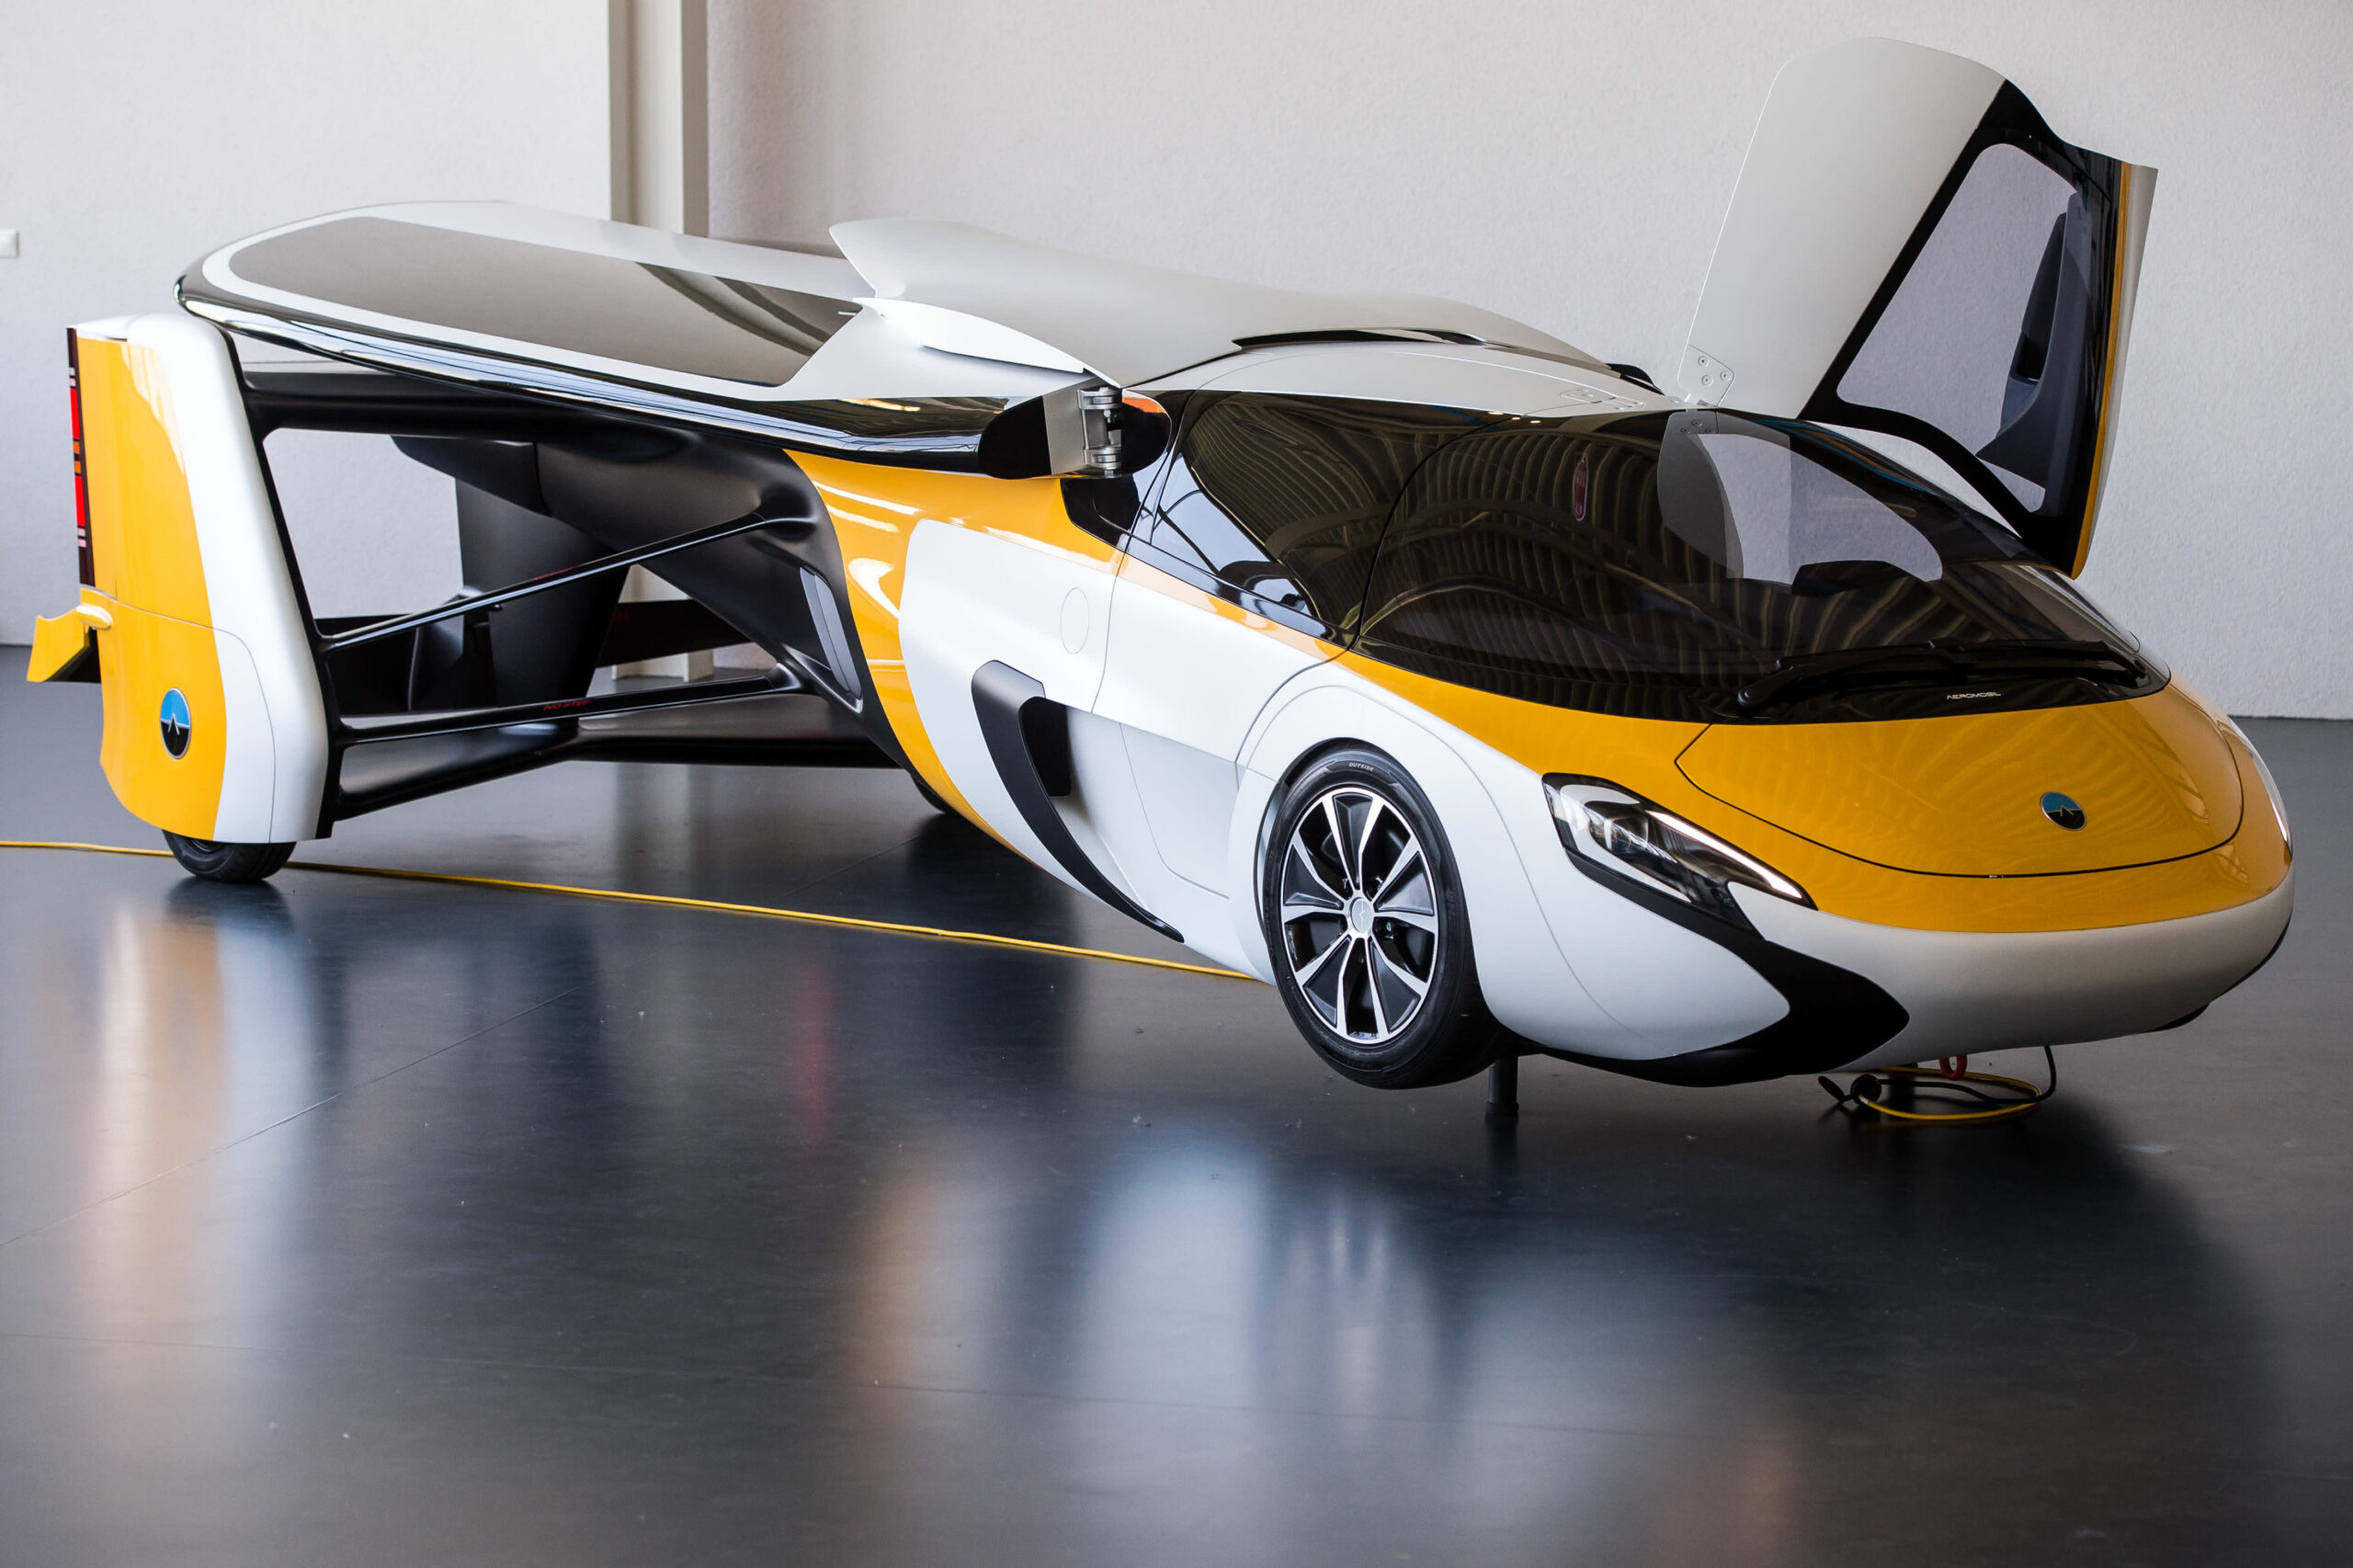 Flying cars could be commercially available in 2024: Tech firm CEO